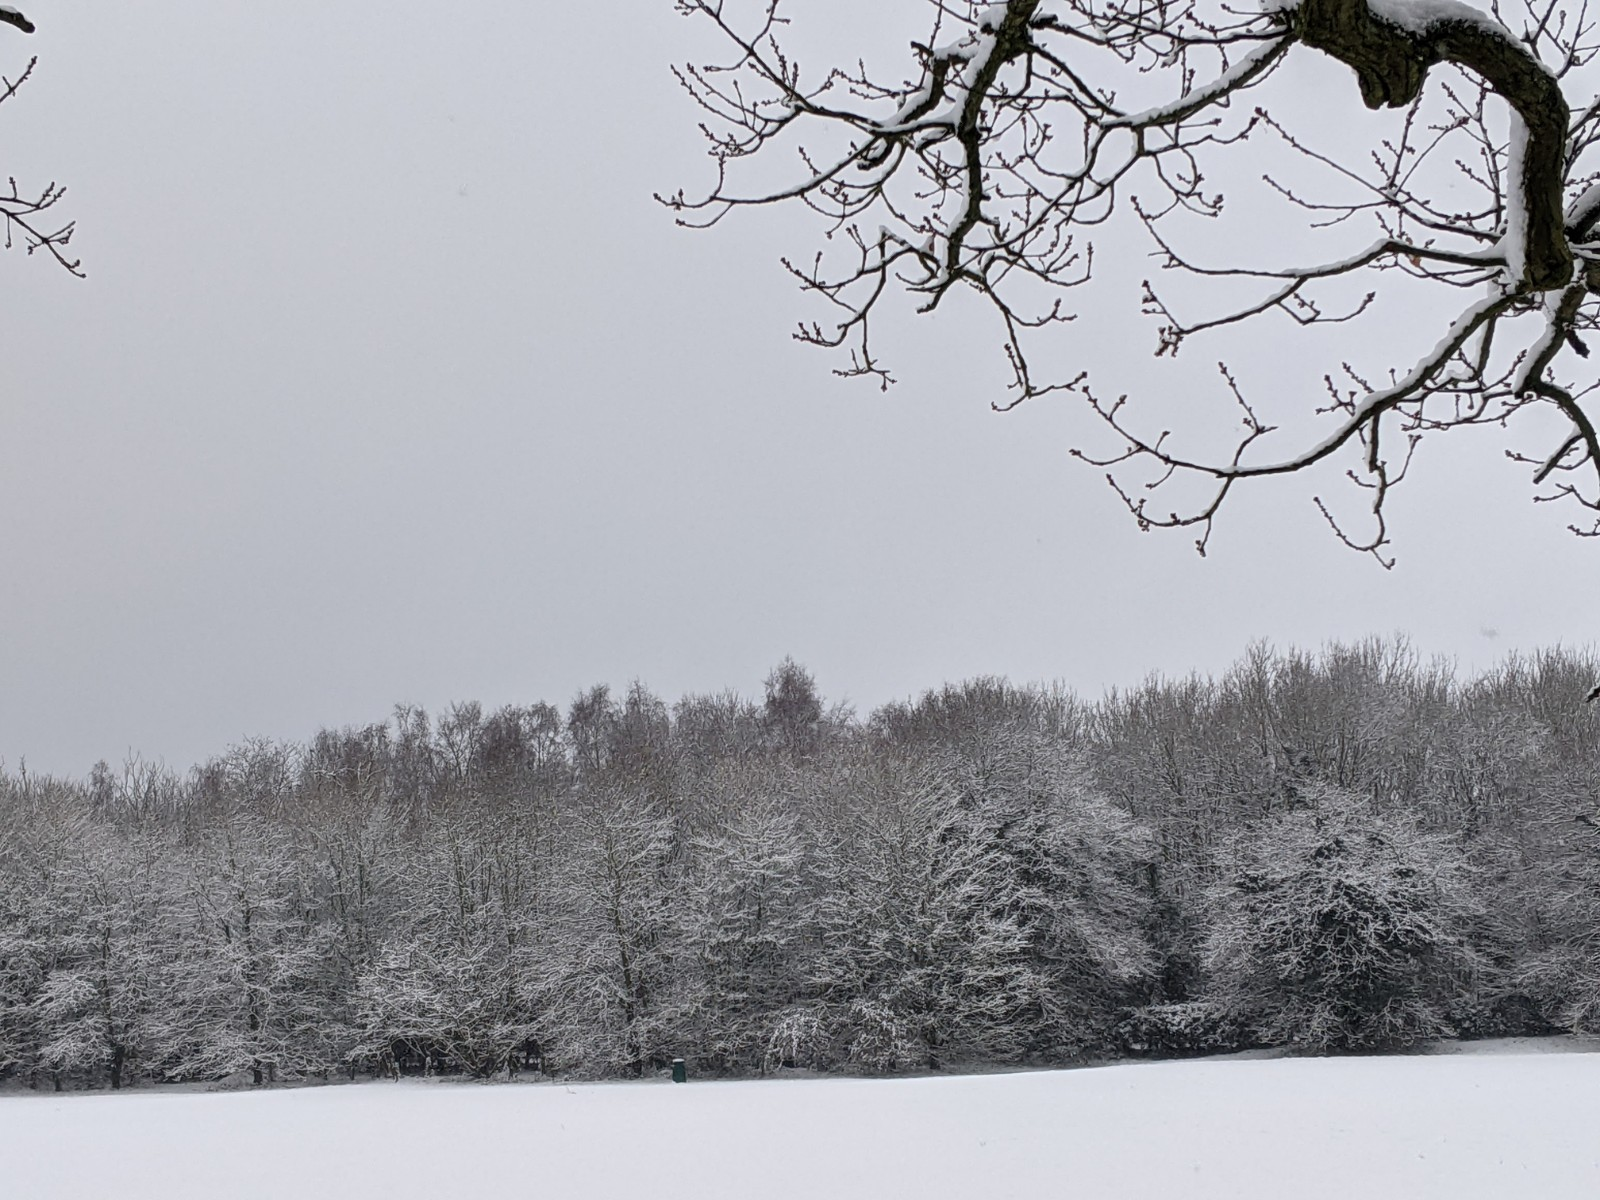 Snowy trees at Bearwood Recreation Ground